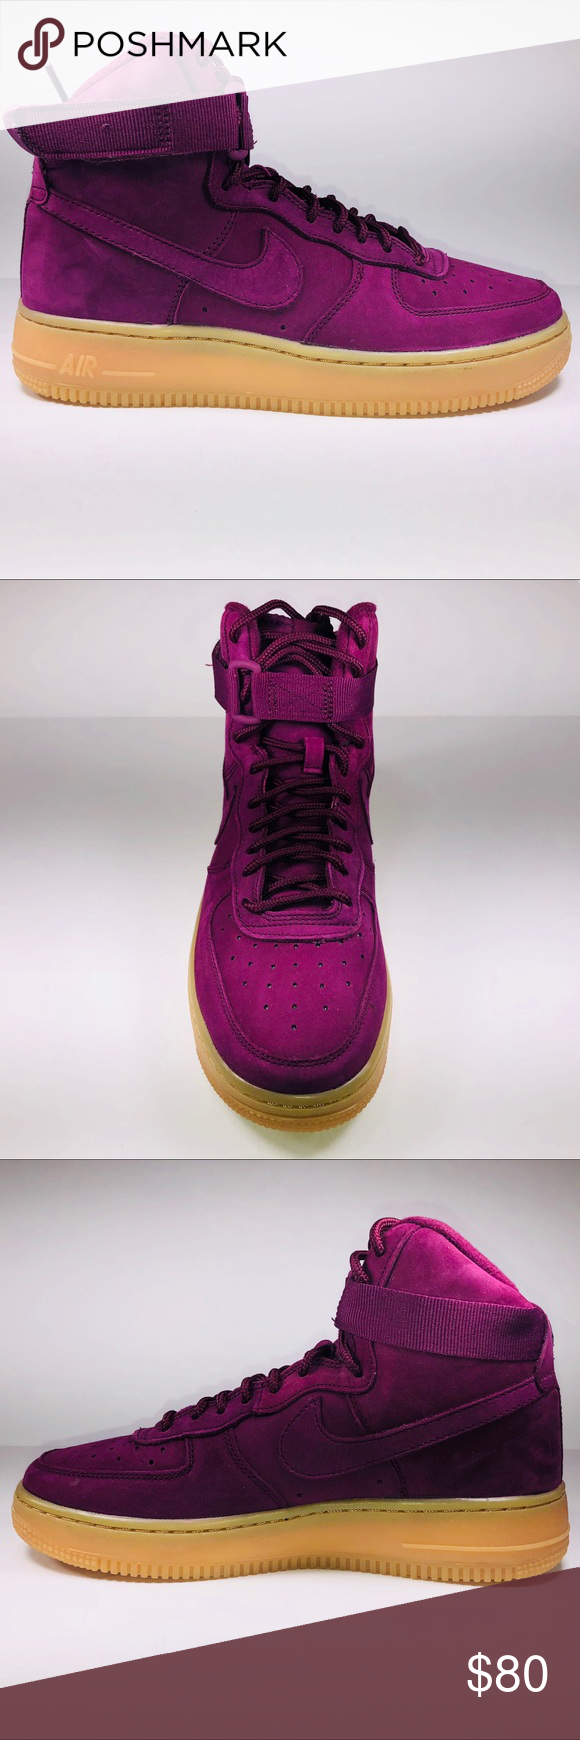 Nike Air Force 1 High WB (GS) Bordeaux Sneakers New With Damaged Box Missing 95cc6e940